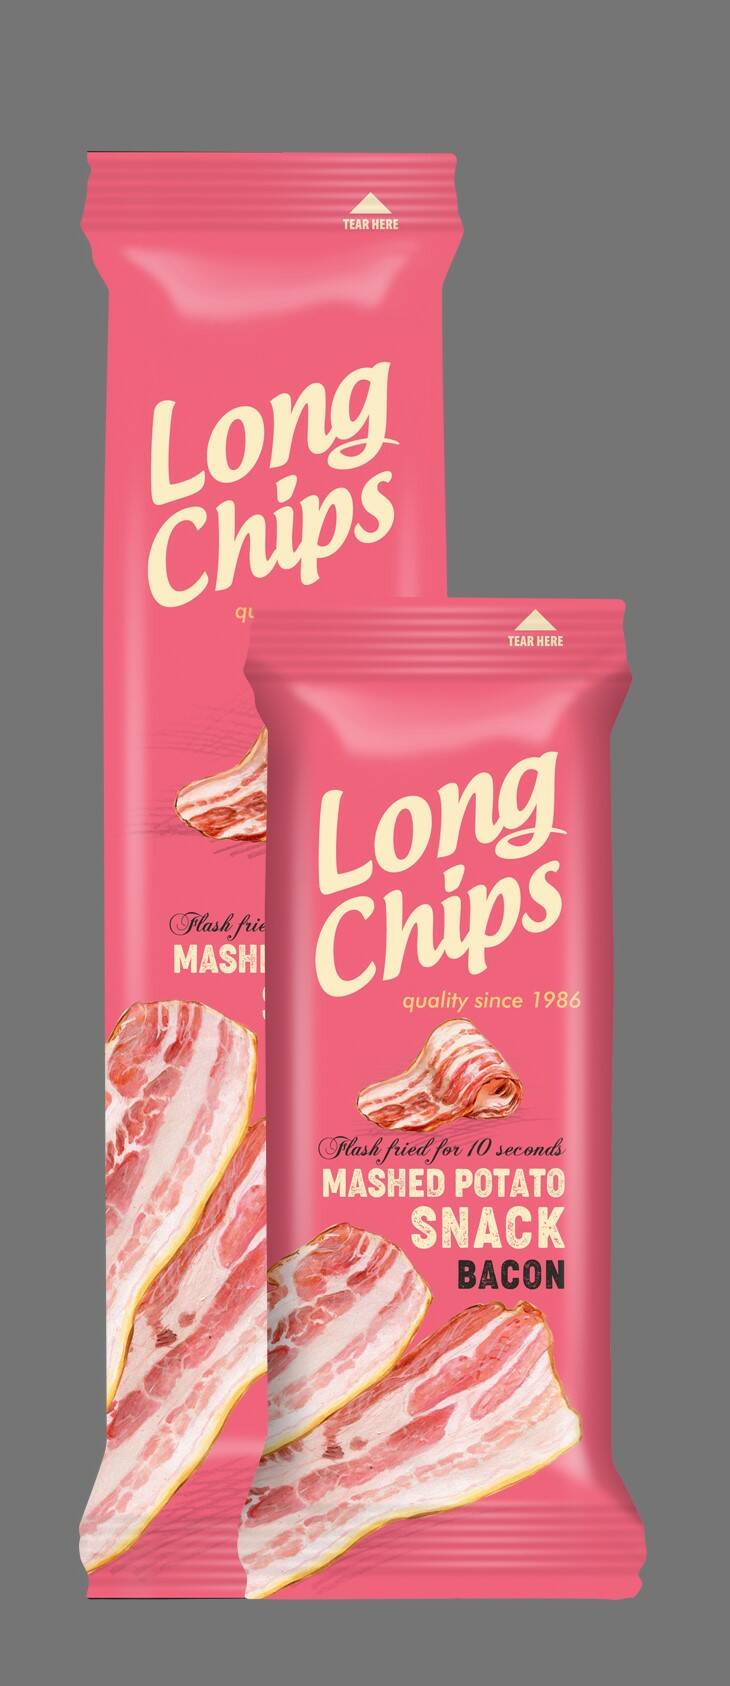 Long potato chips with bacon, pre order